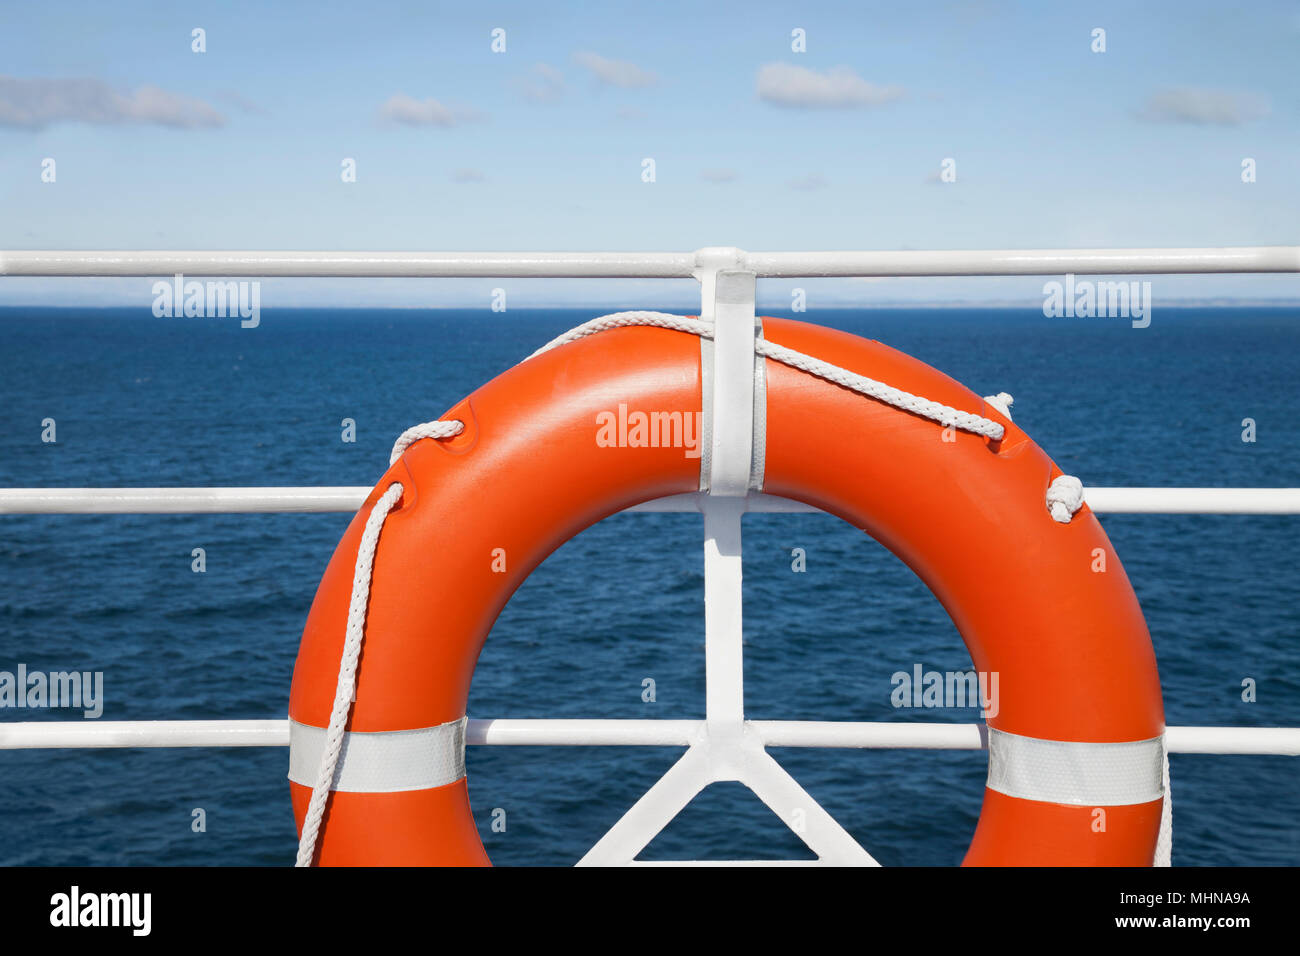 Lifebuoy and hand railing deck at cruise ship against seascape in a sunny day. Travel concept - Stock Image